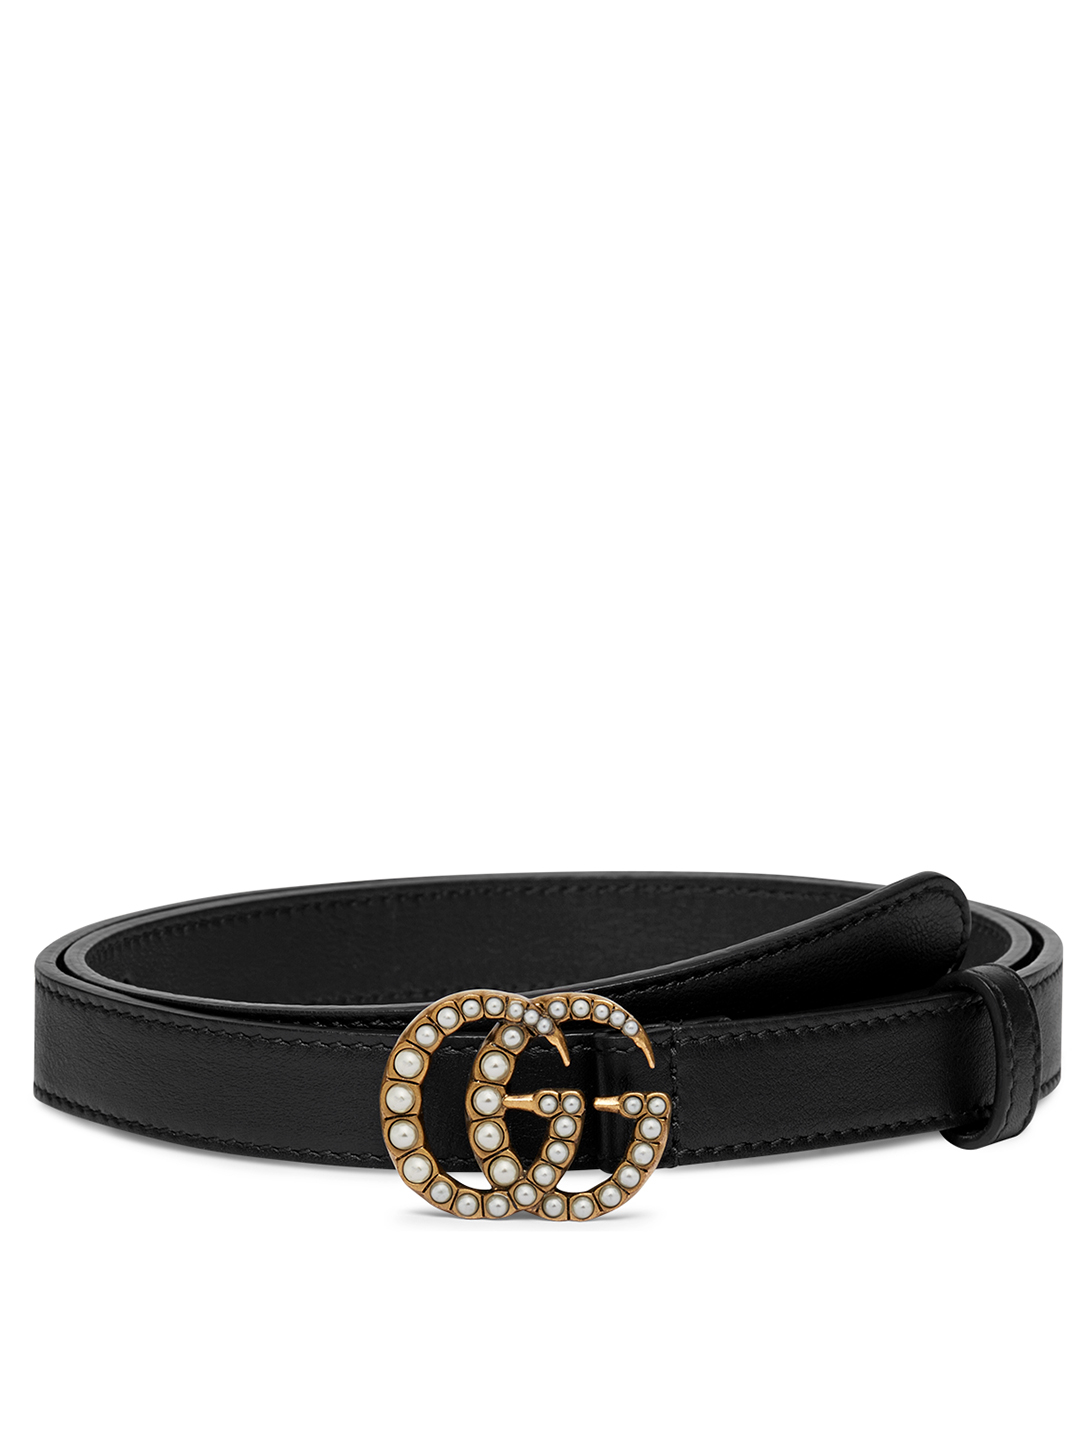 GUCCI Thin Leather Belt With Pearl Double G Buckle Women's Black